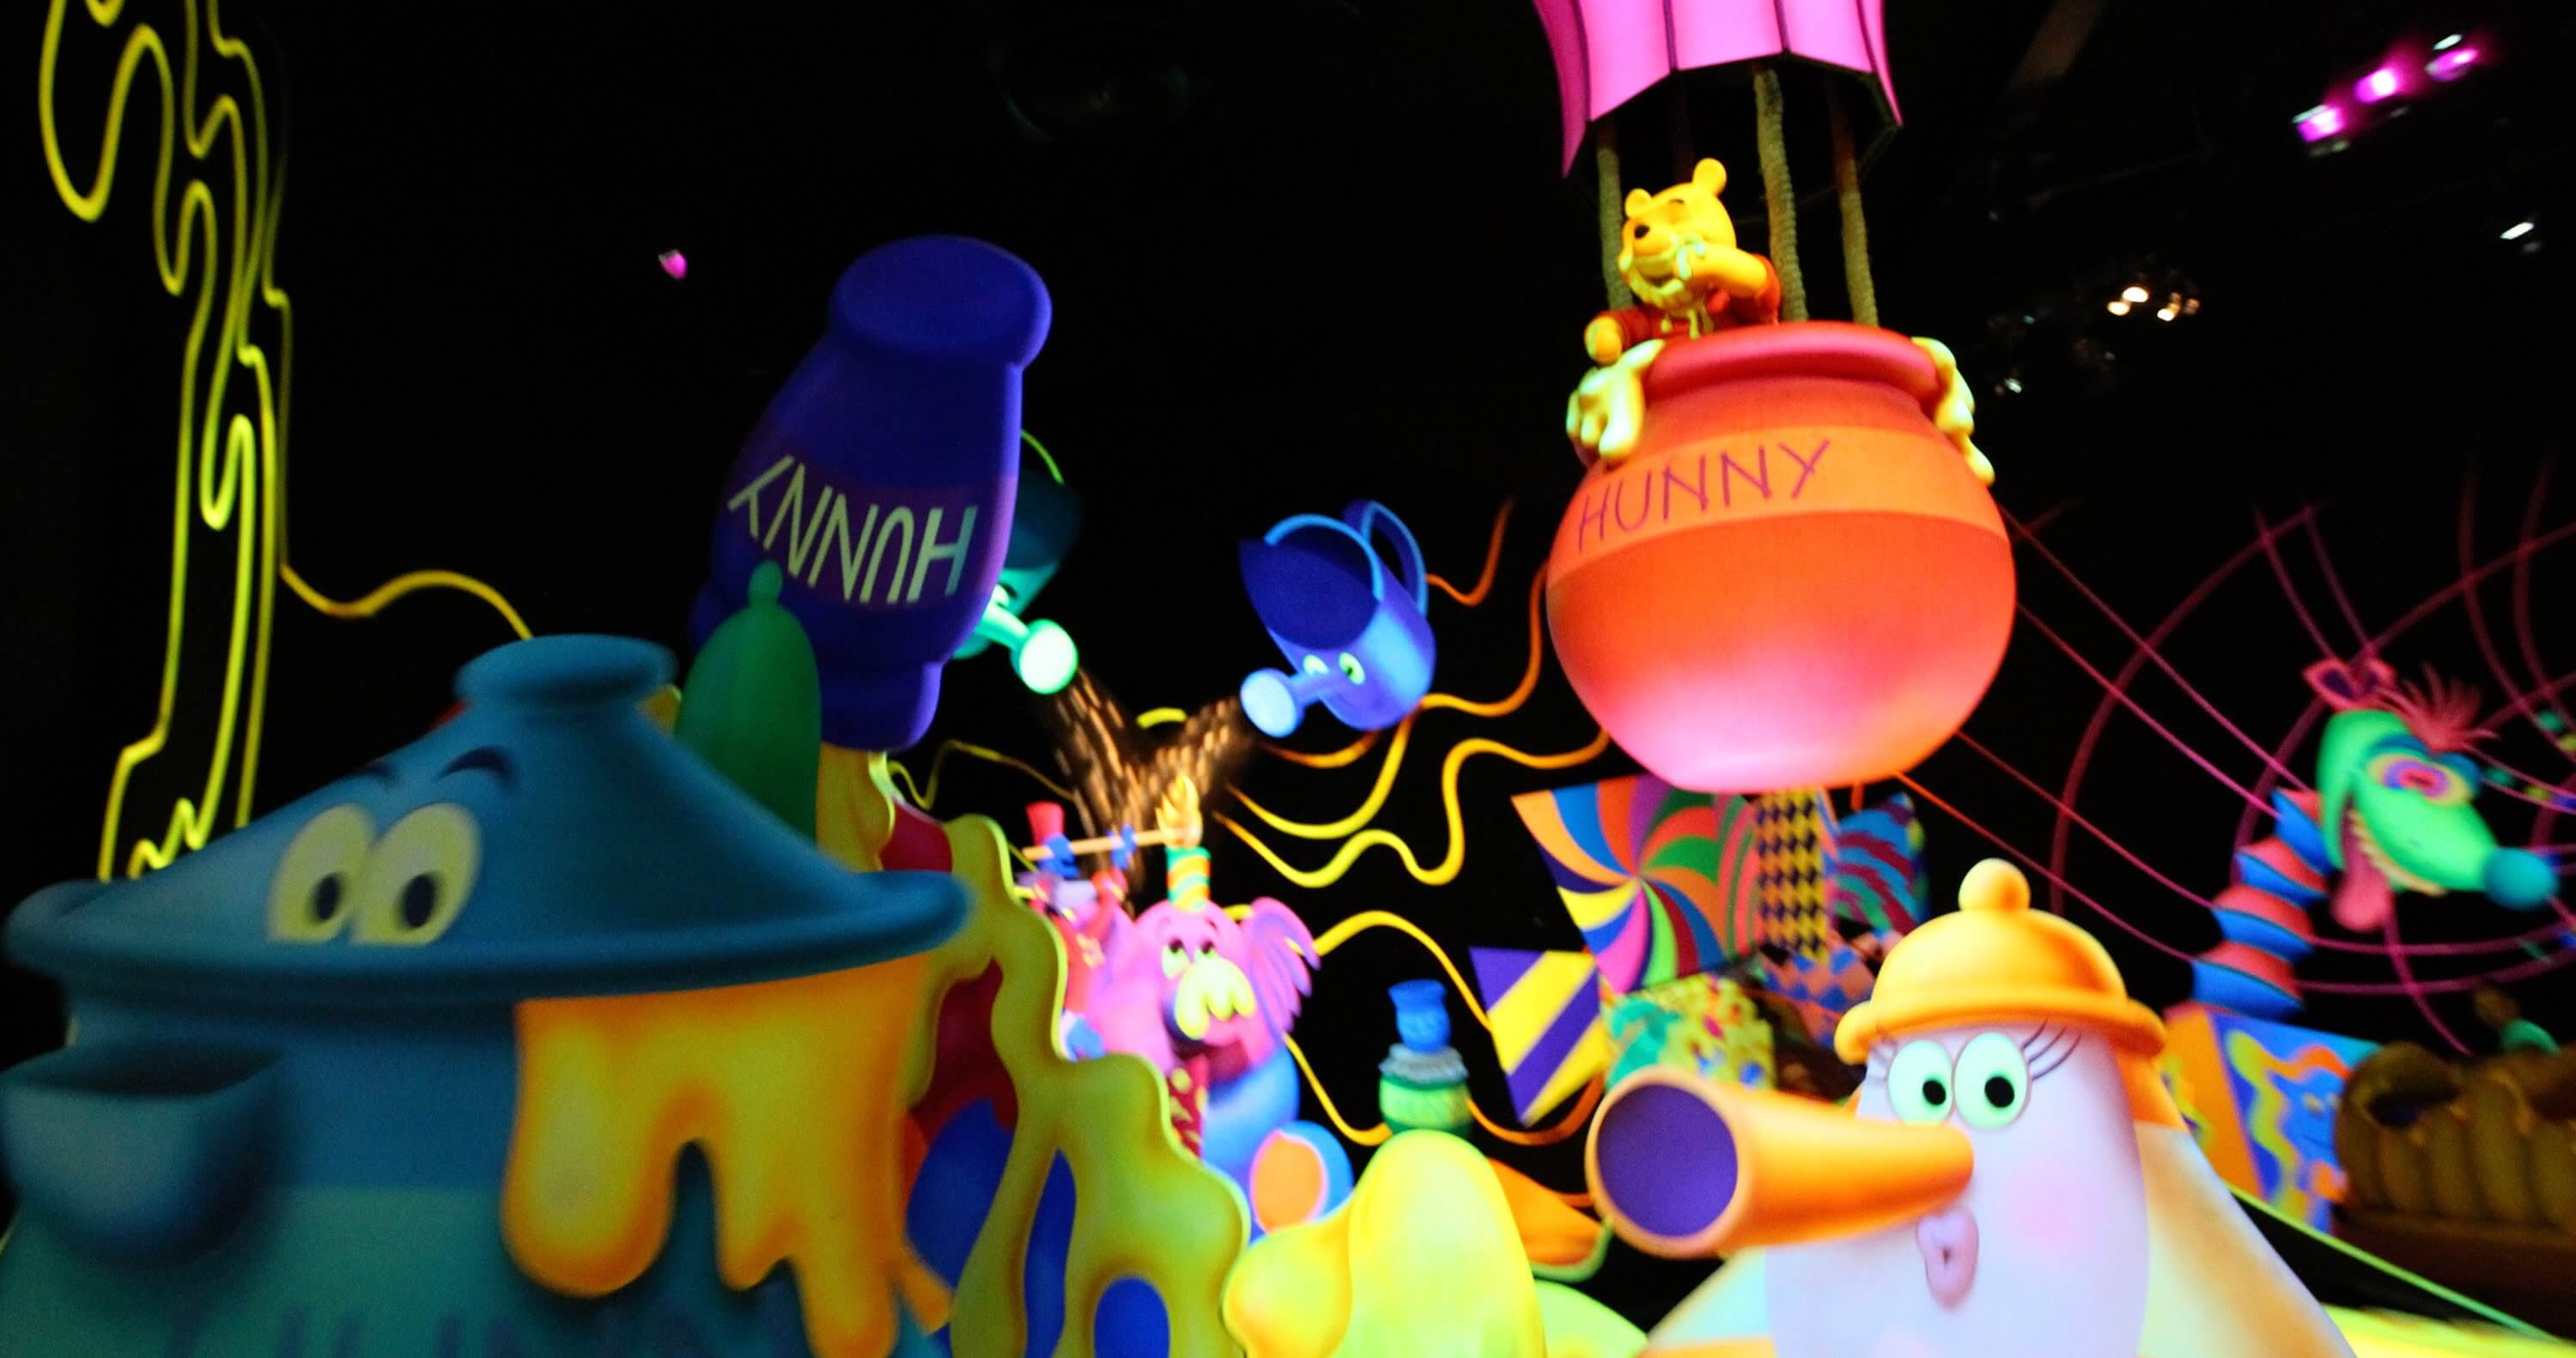 winnie the pooh Things to do in disneyland